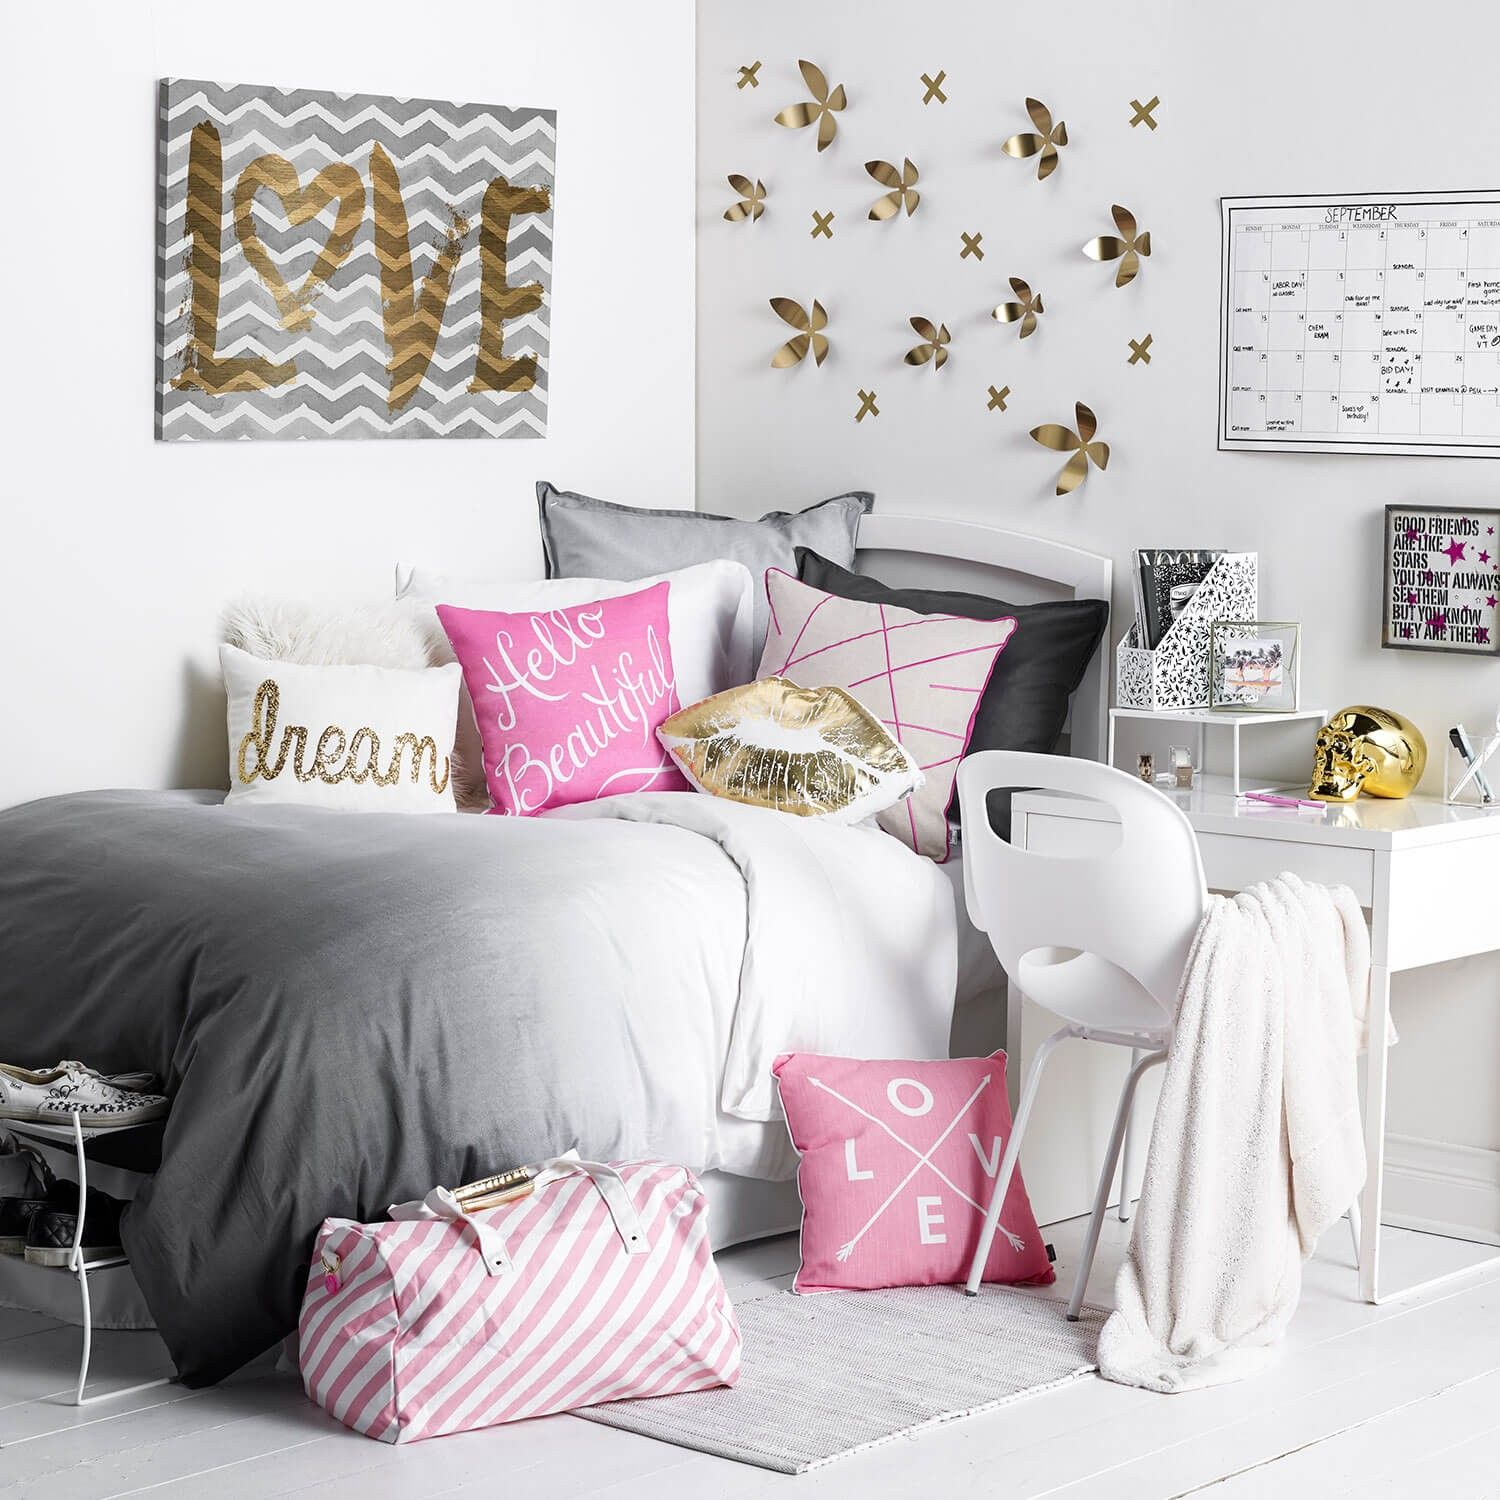 black & white and pink and metallic | room and board ;) | pinterest